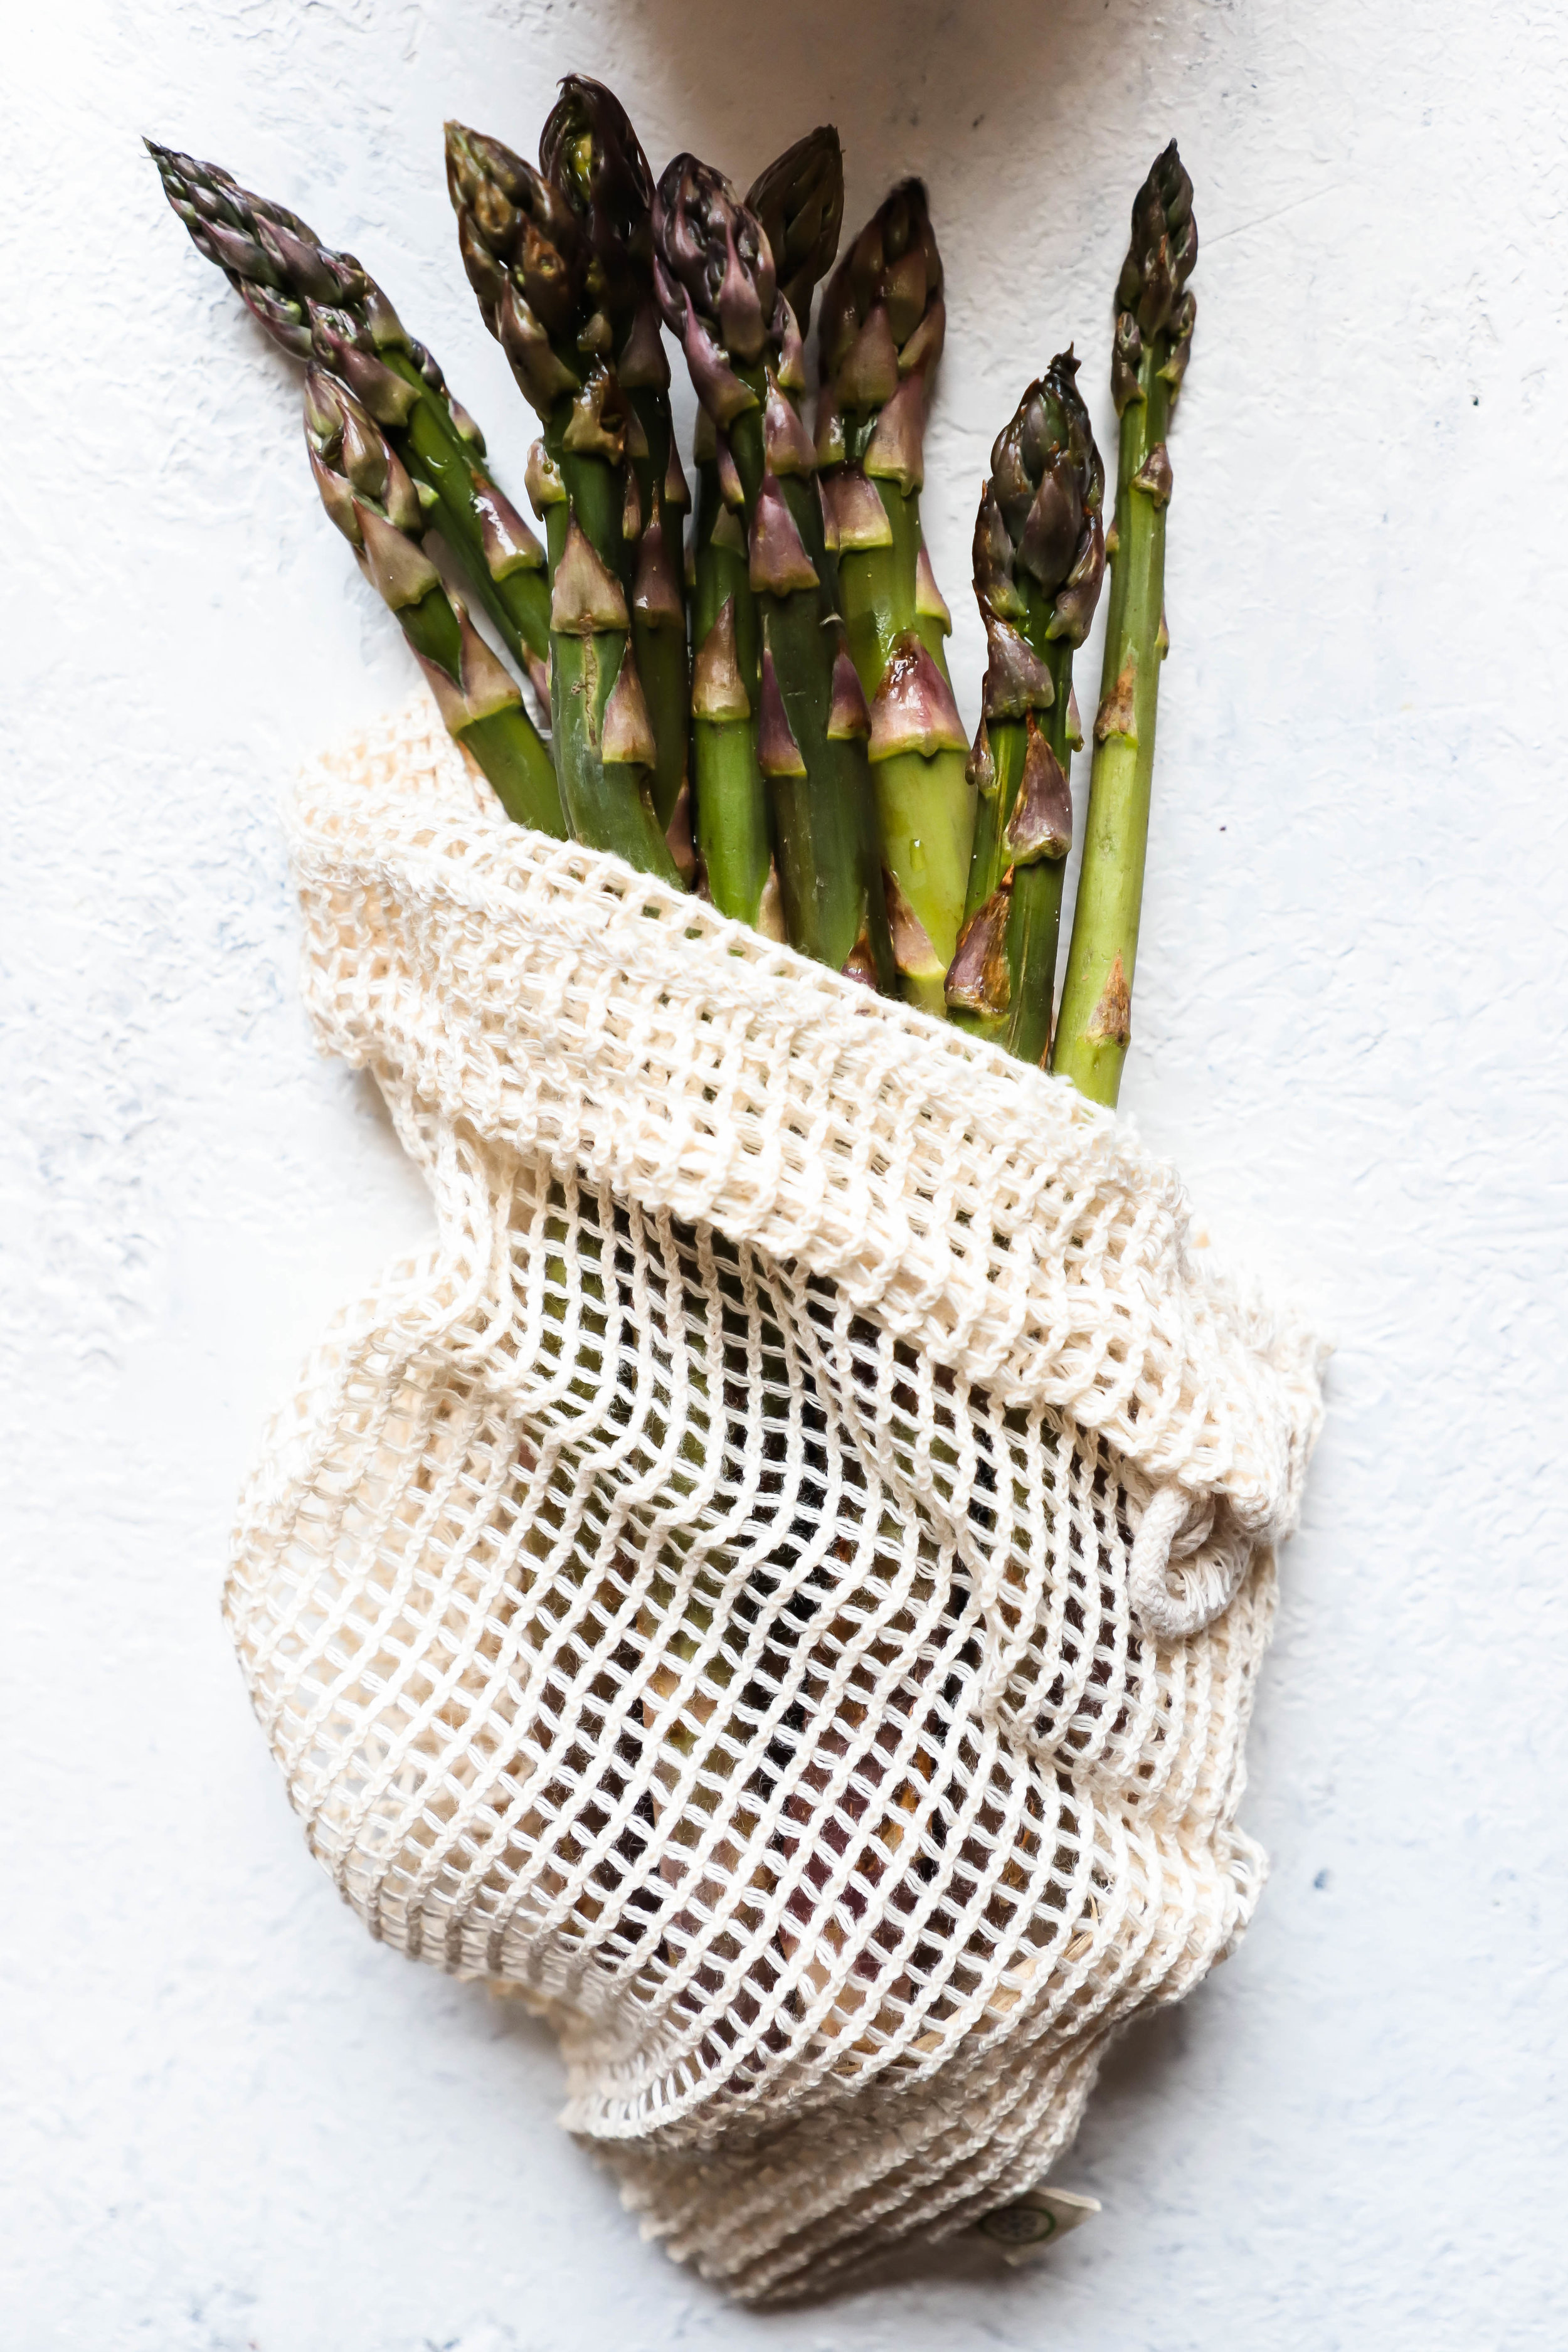 asparagus in produce bag to reduce single-use plastic